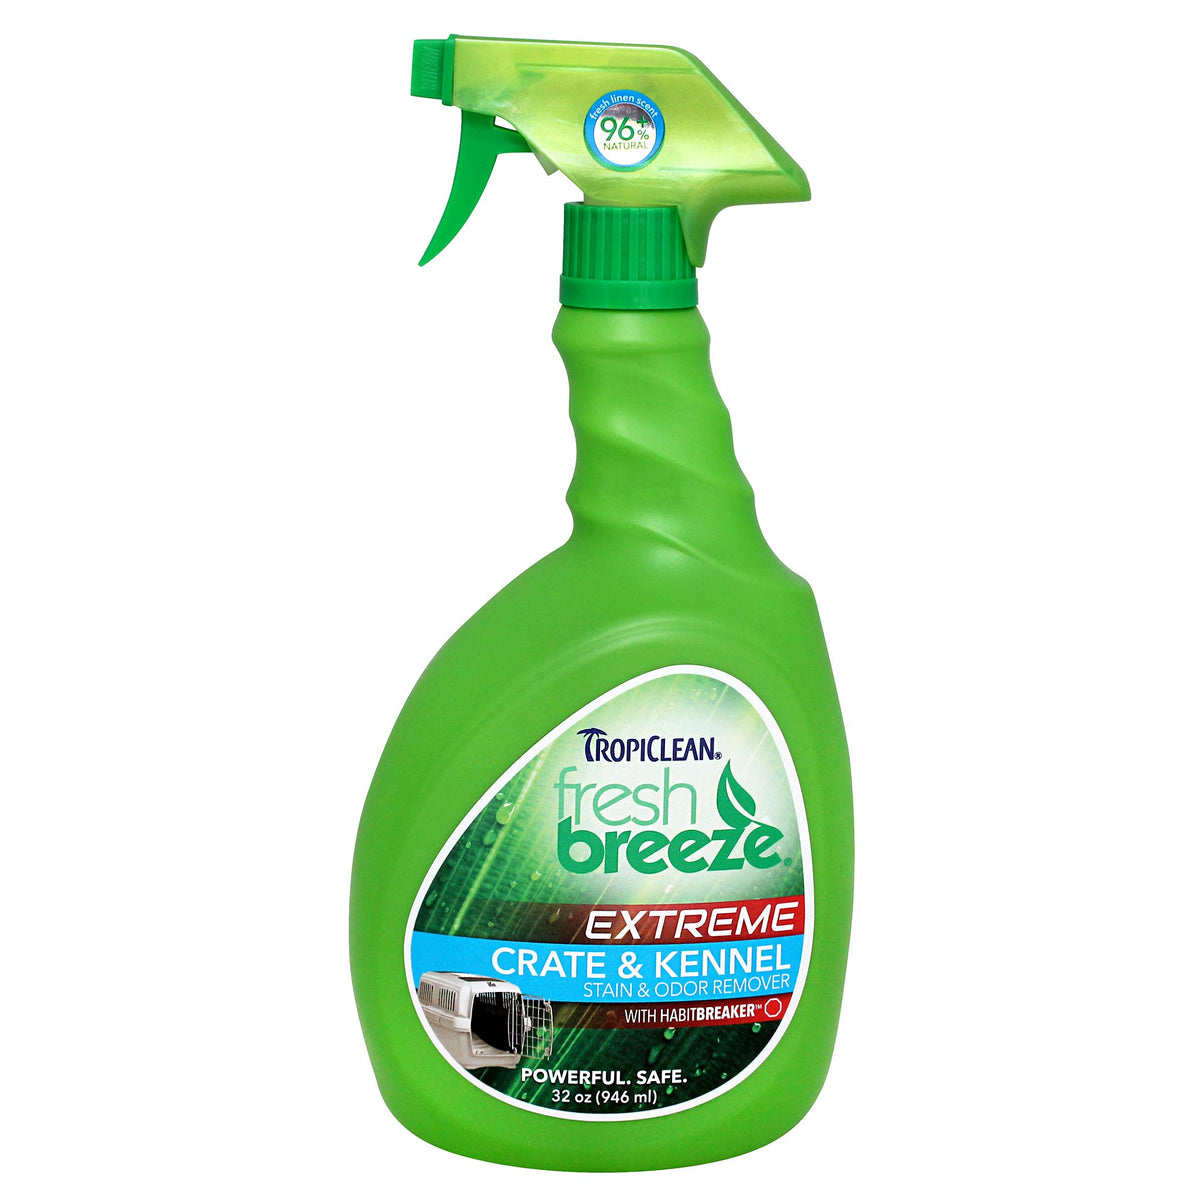 Tropiclean Extreme Crate & Kennel Stain & Odor Remover 946mL